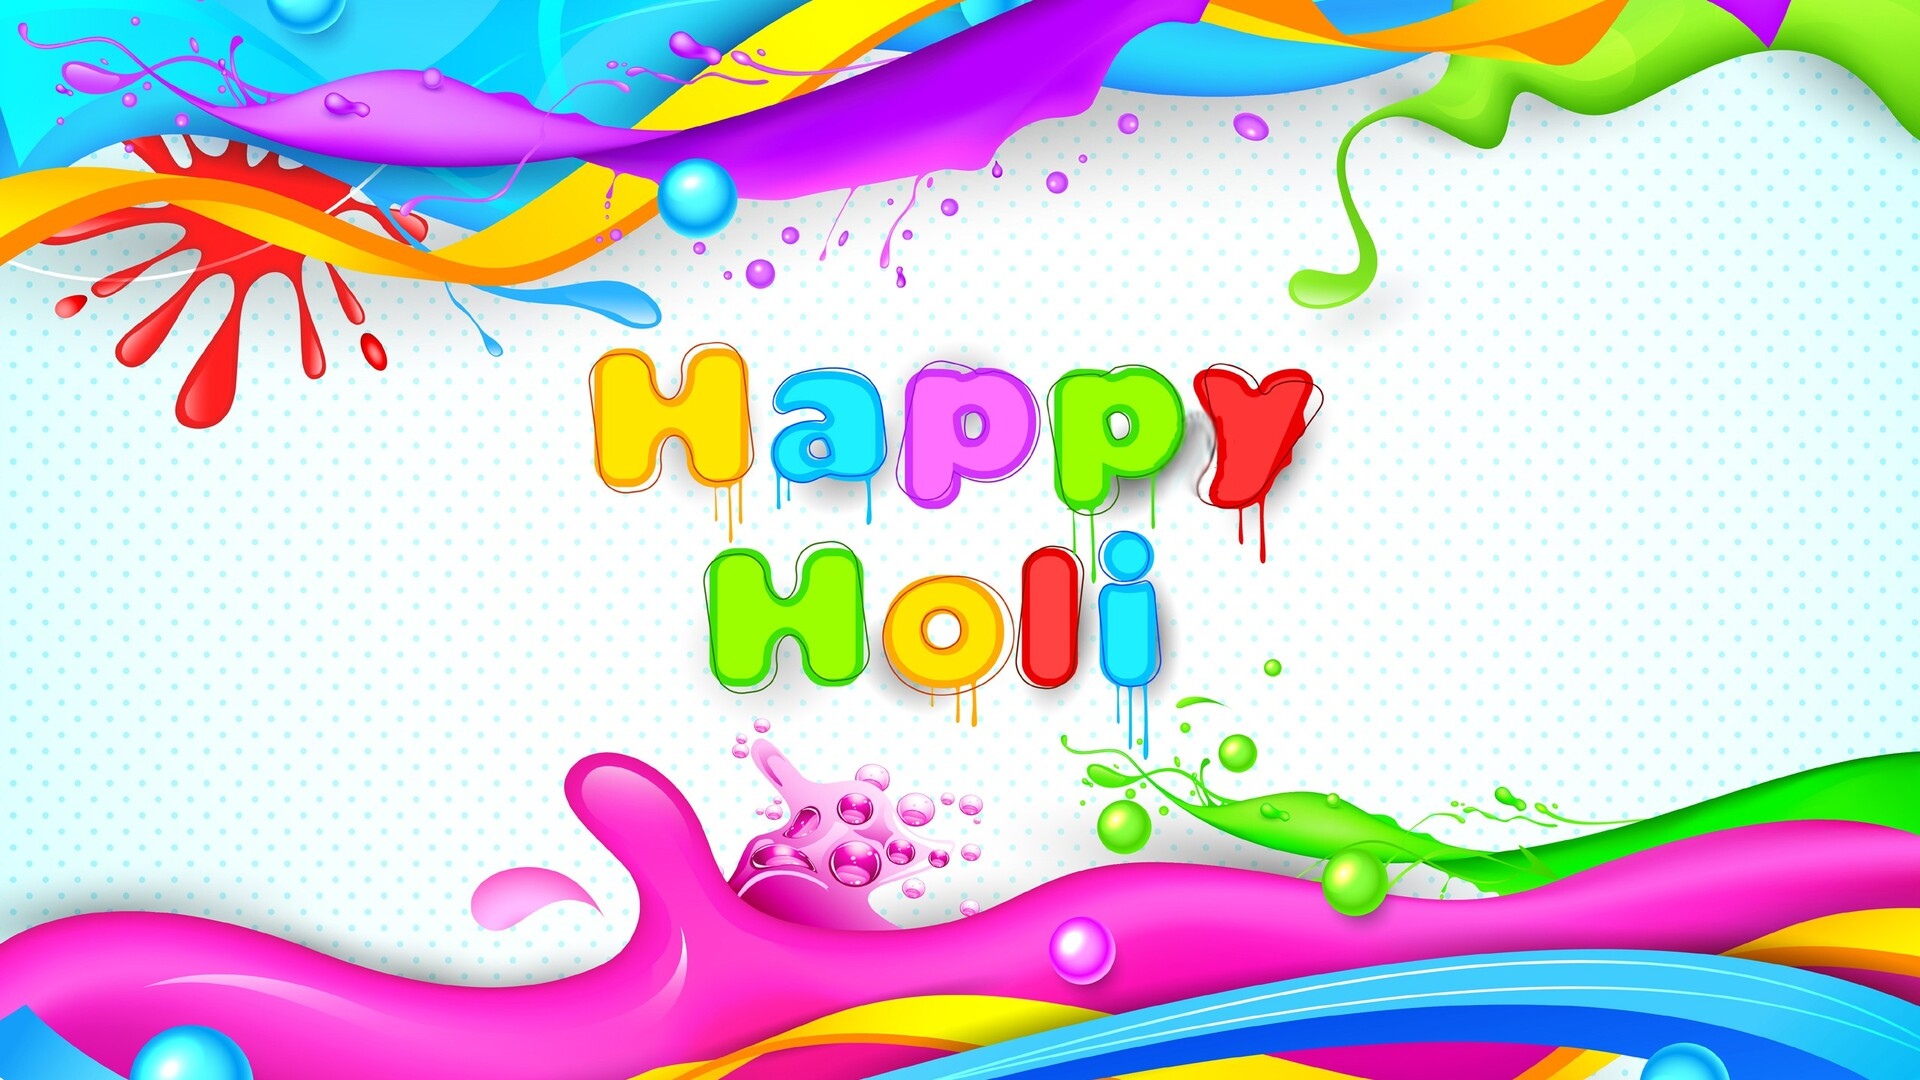 1920x1080 Happy Holi Hd Laptop Full Hd 1080p Hd 4k Wallpapers